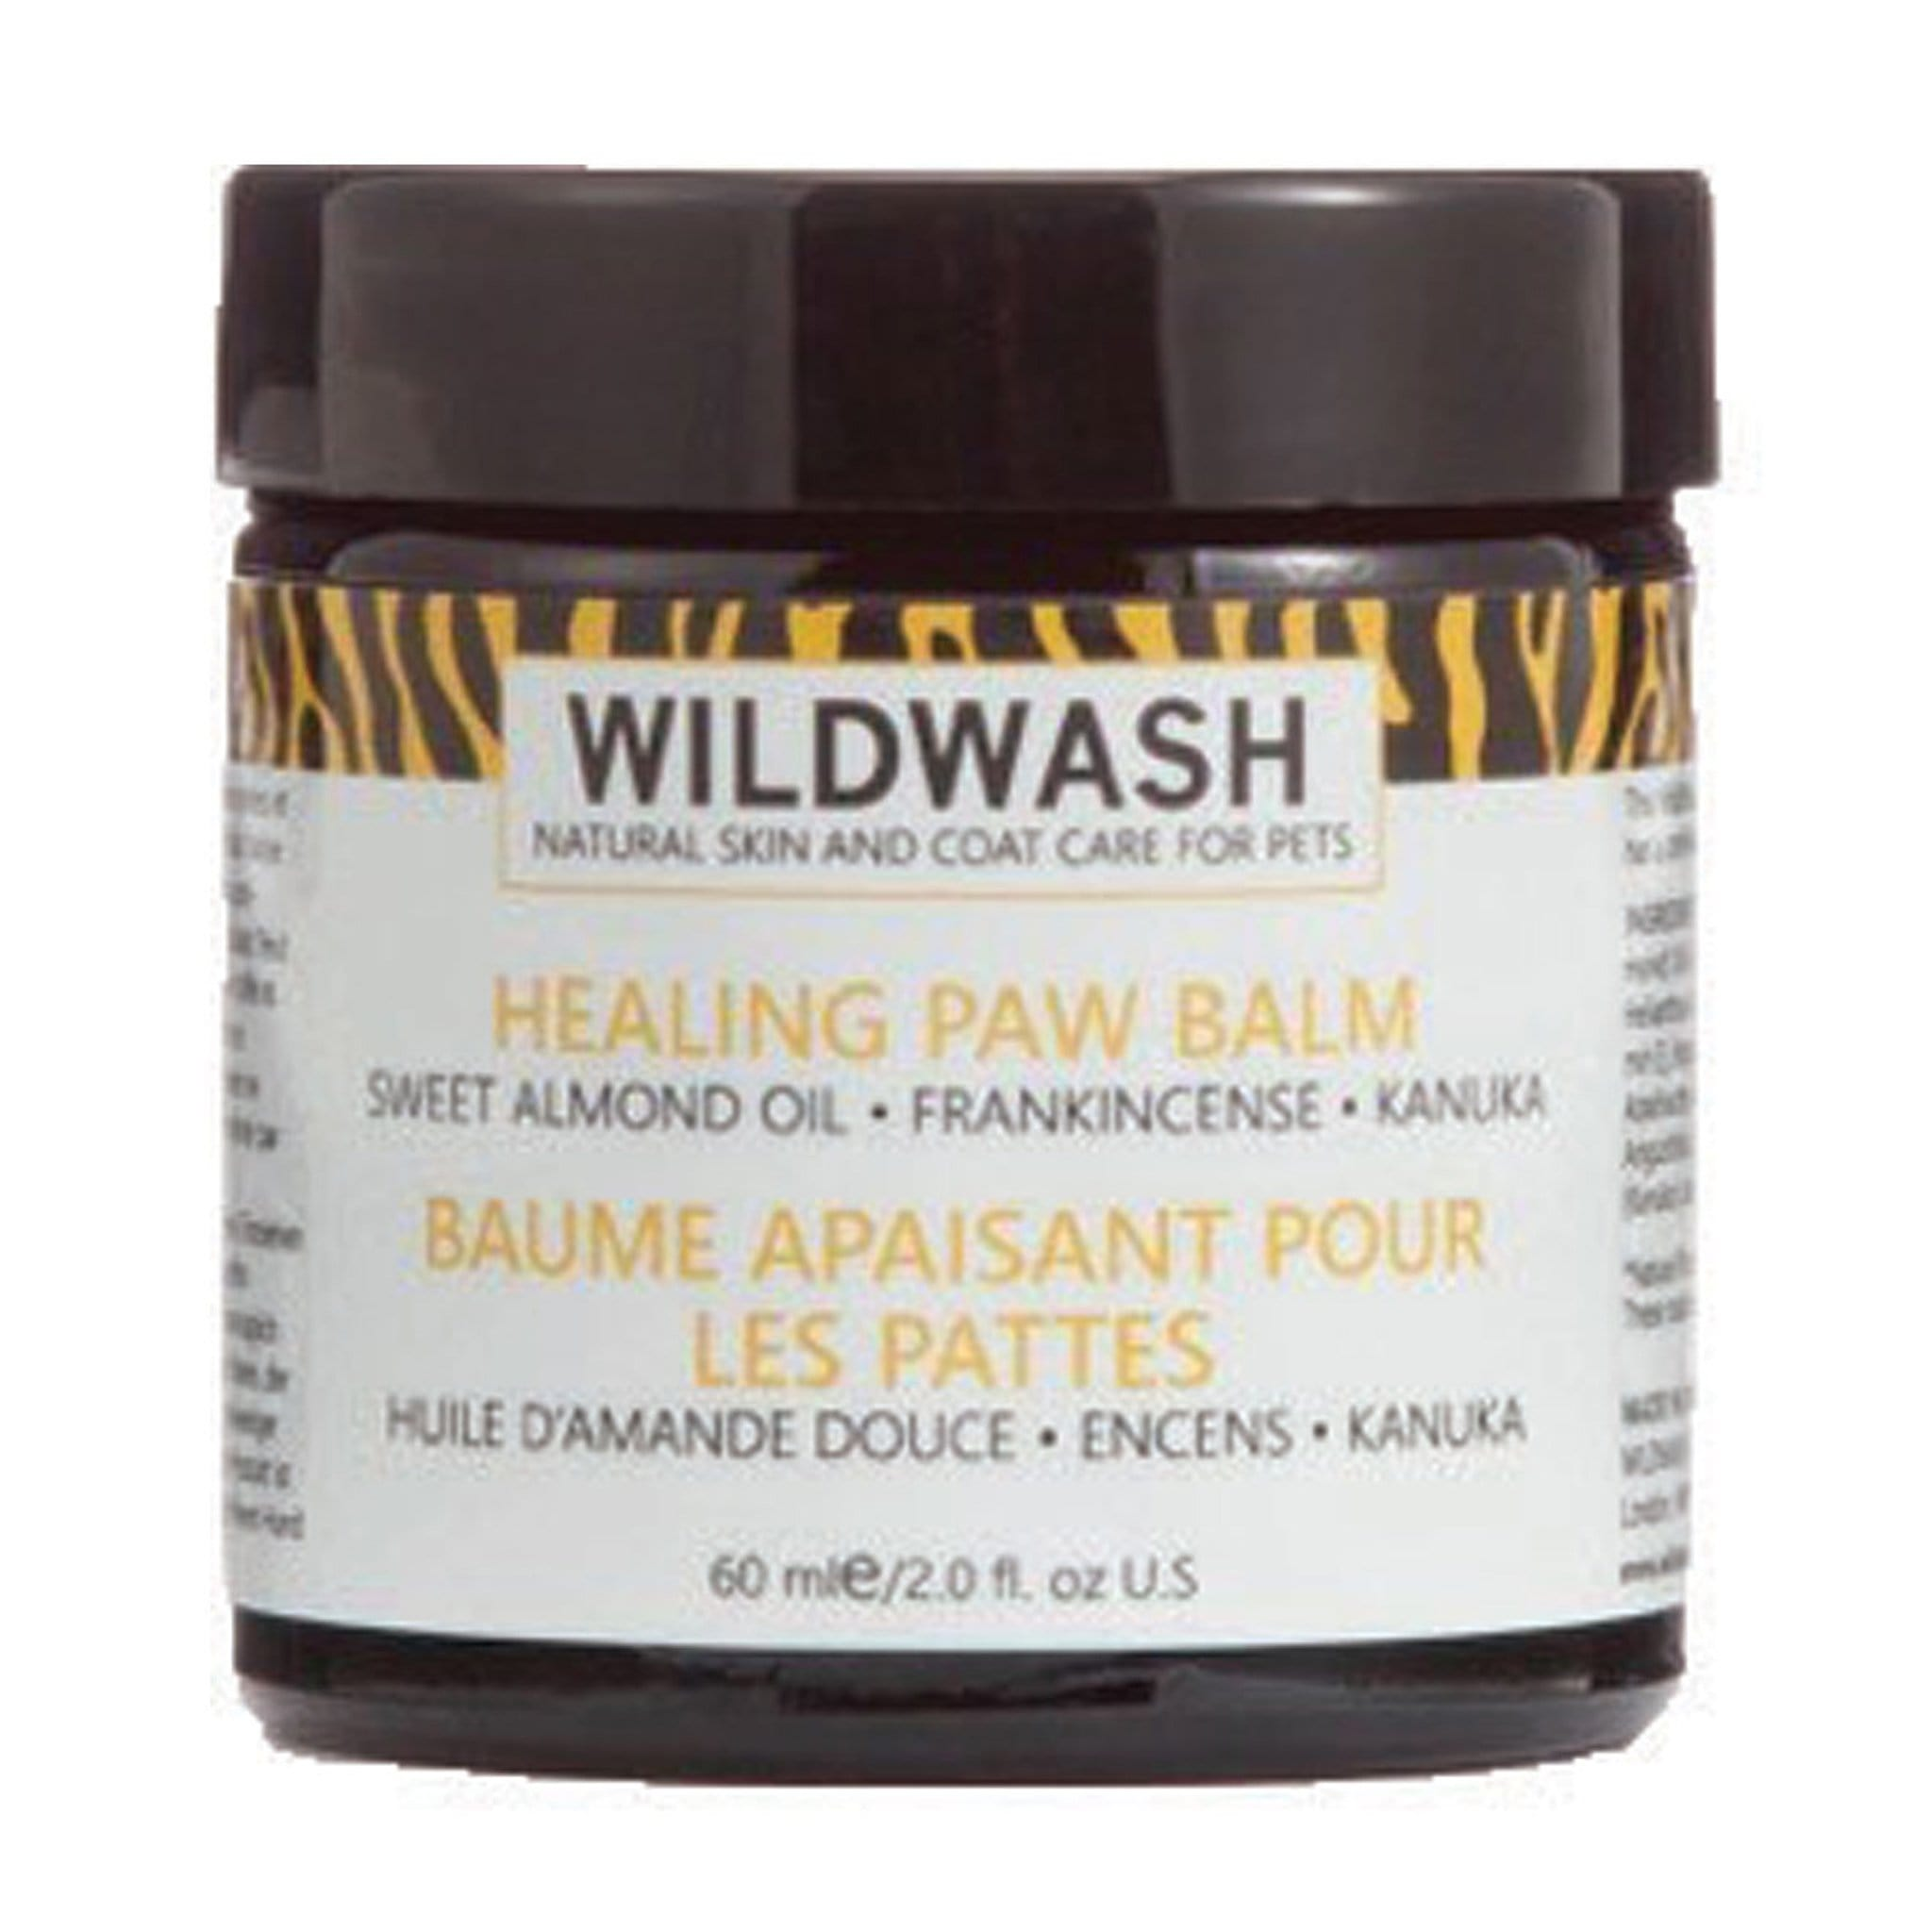 Pet Revolution Wildwash Healing Paw Balm 60ml 11561